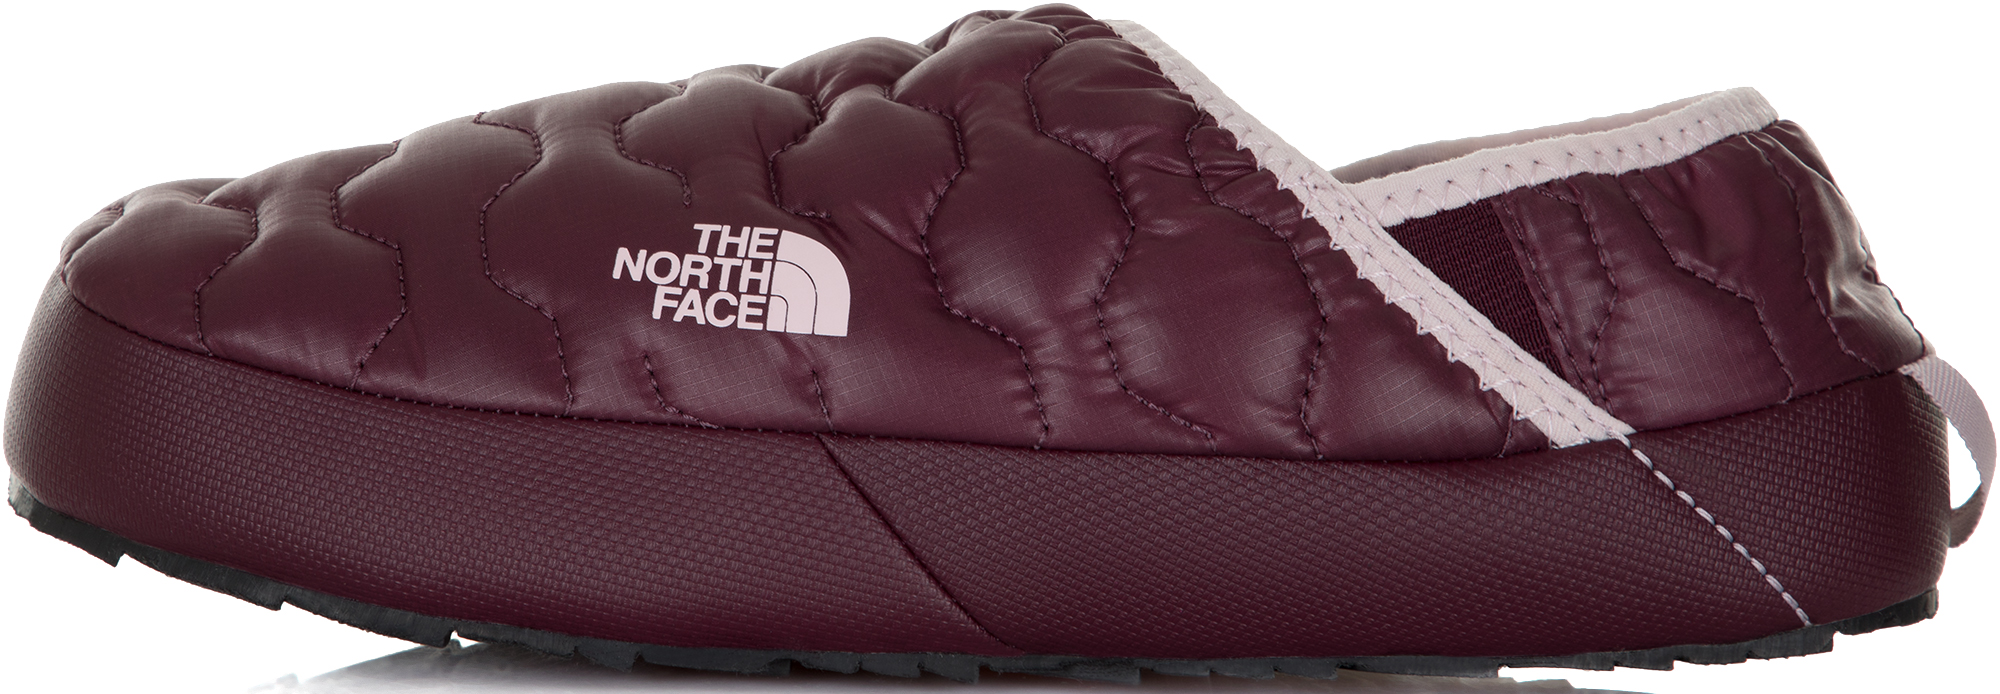 The North Face Полуботинки утепленные женские The North Face ThermoBall Traction Mule IV, размер 39 жилет the north face the north face thermoball